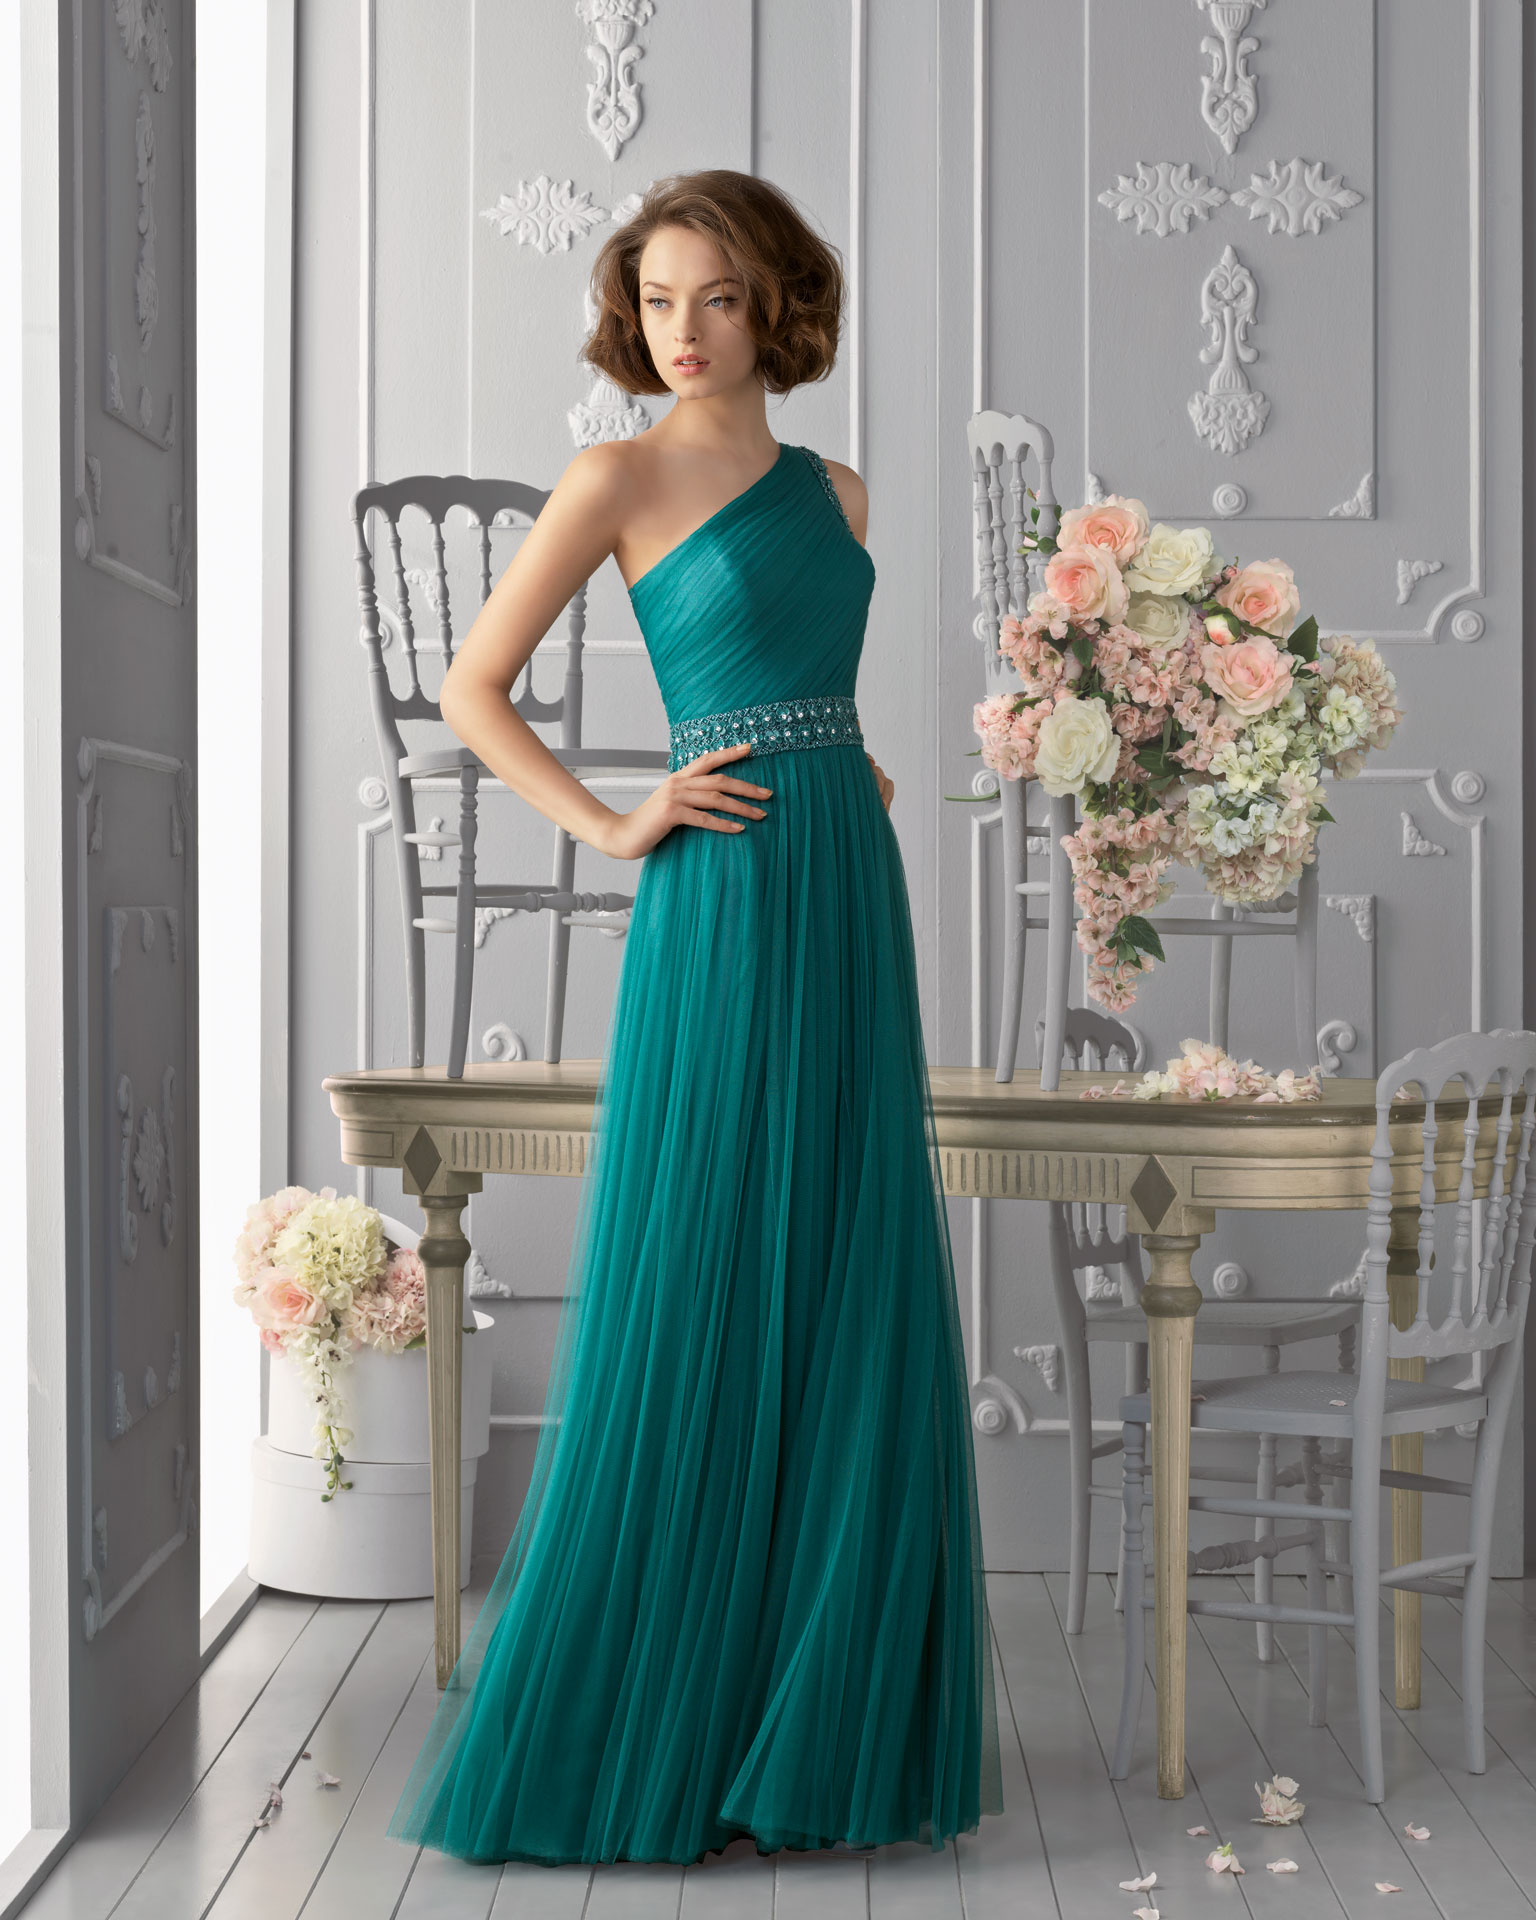 Charming Sheath/Column One Shoulder Beading Floor-length Tulle Prom Dresses